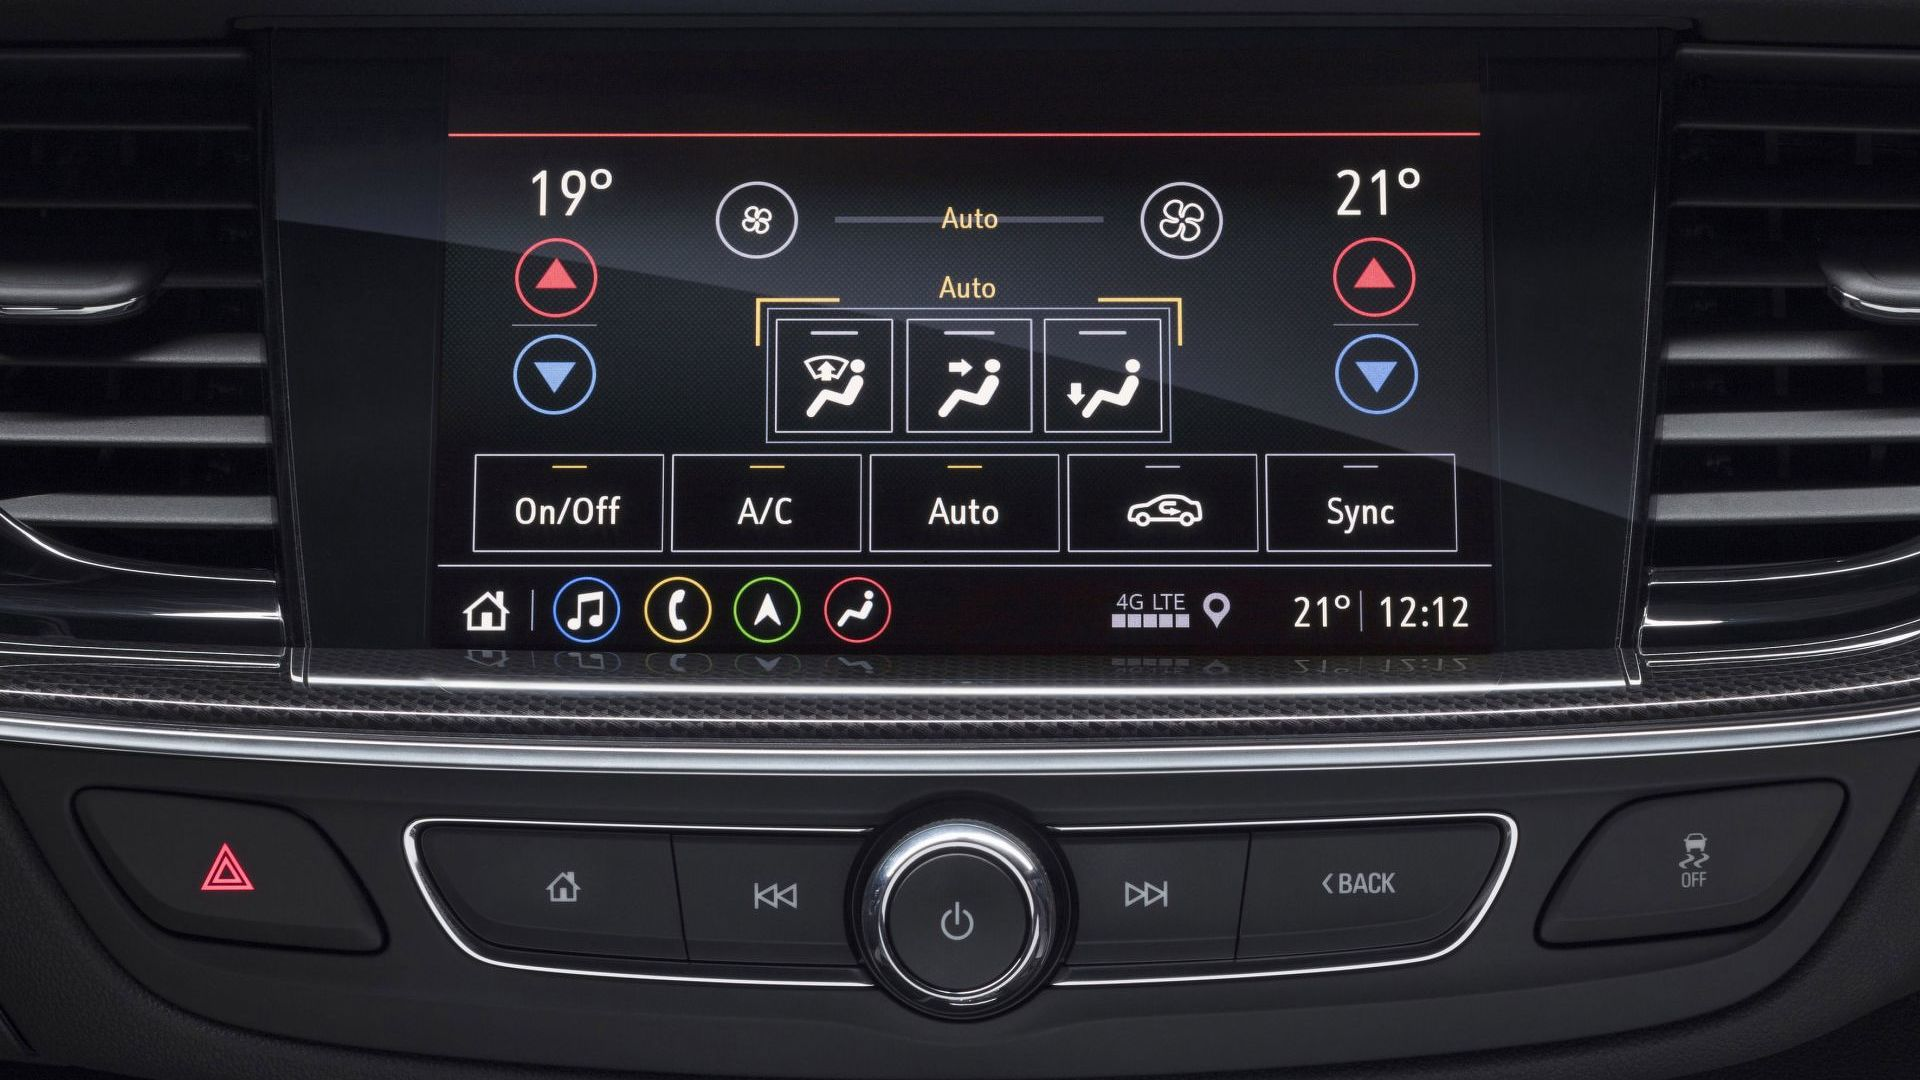 opel insignia gets new infotainment systems with better connectivity